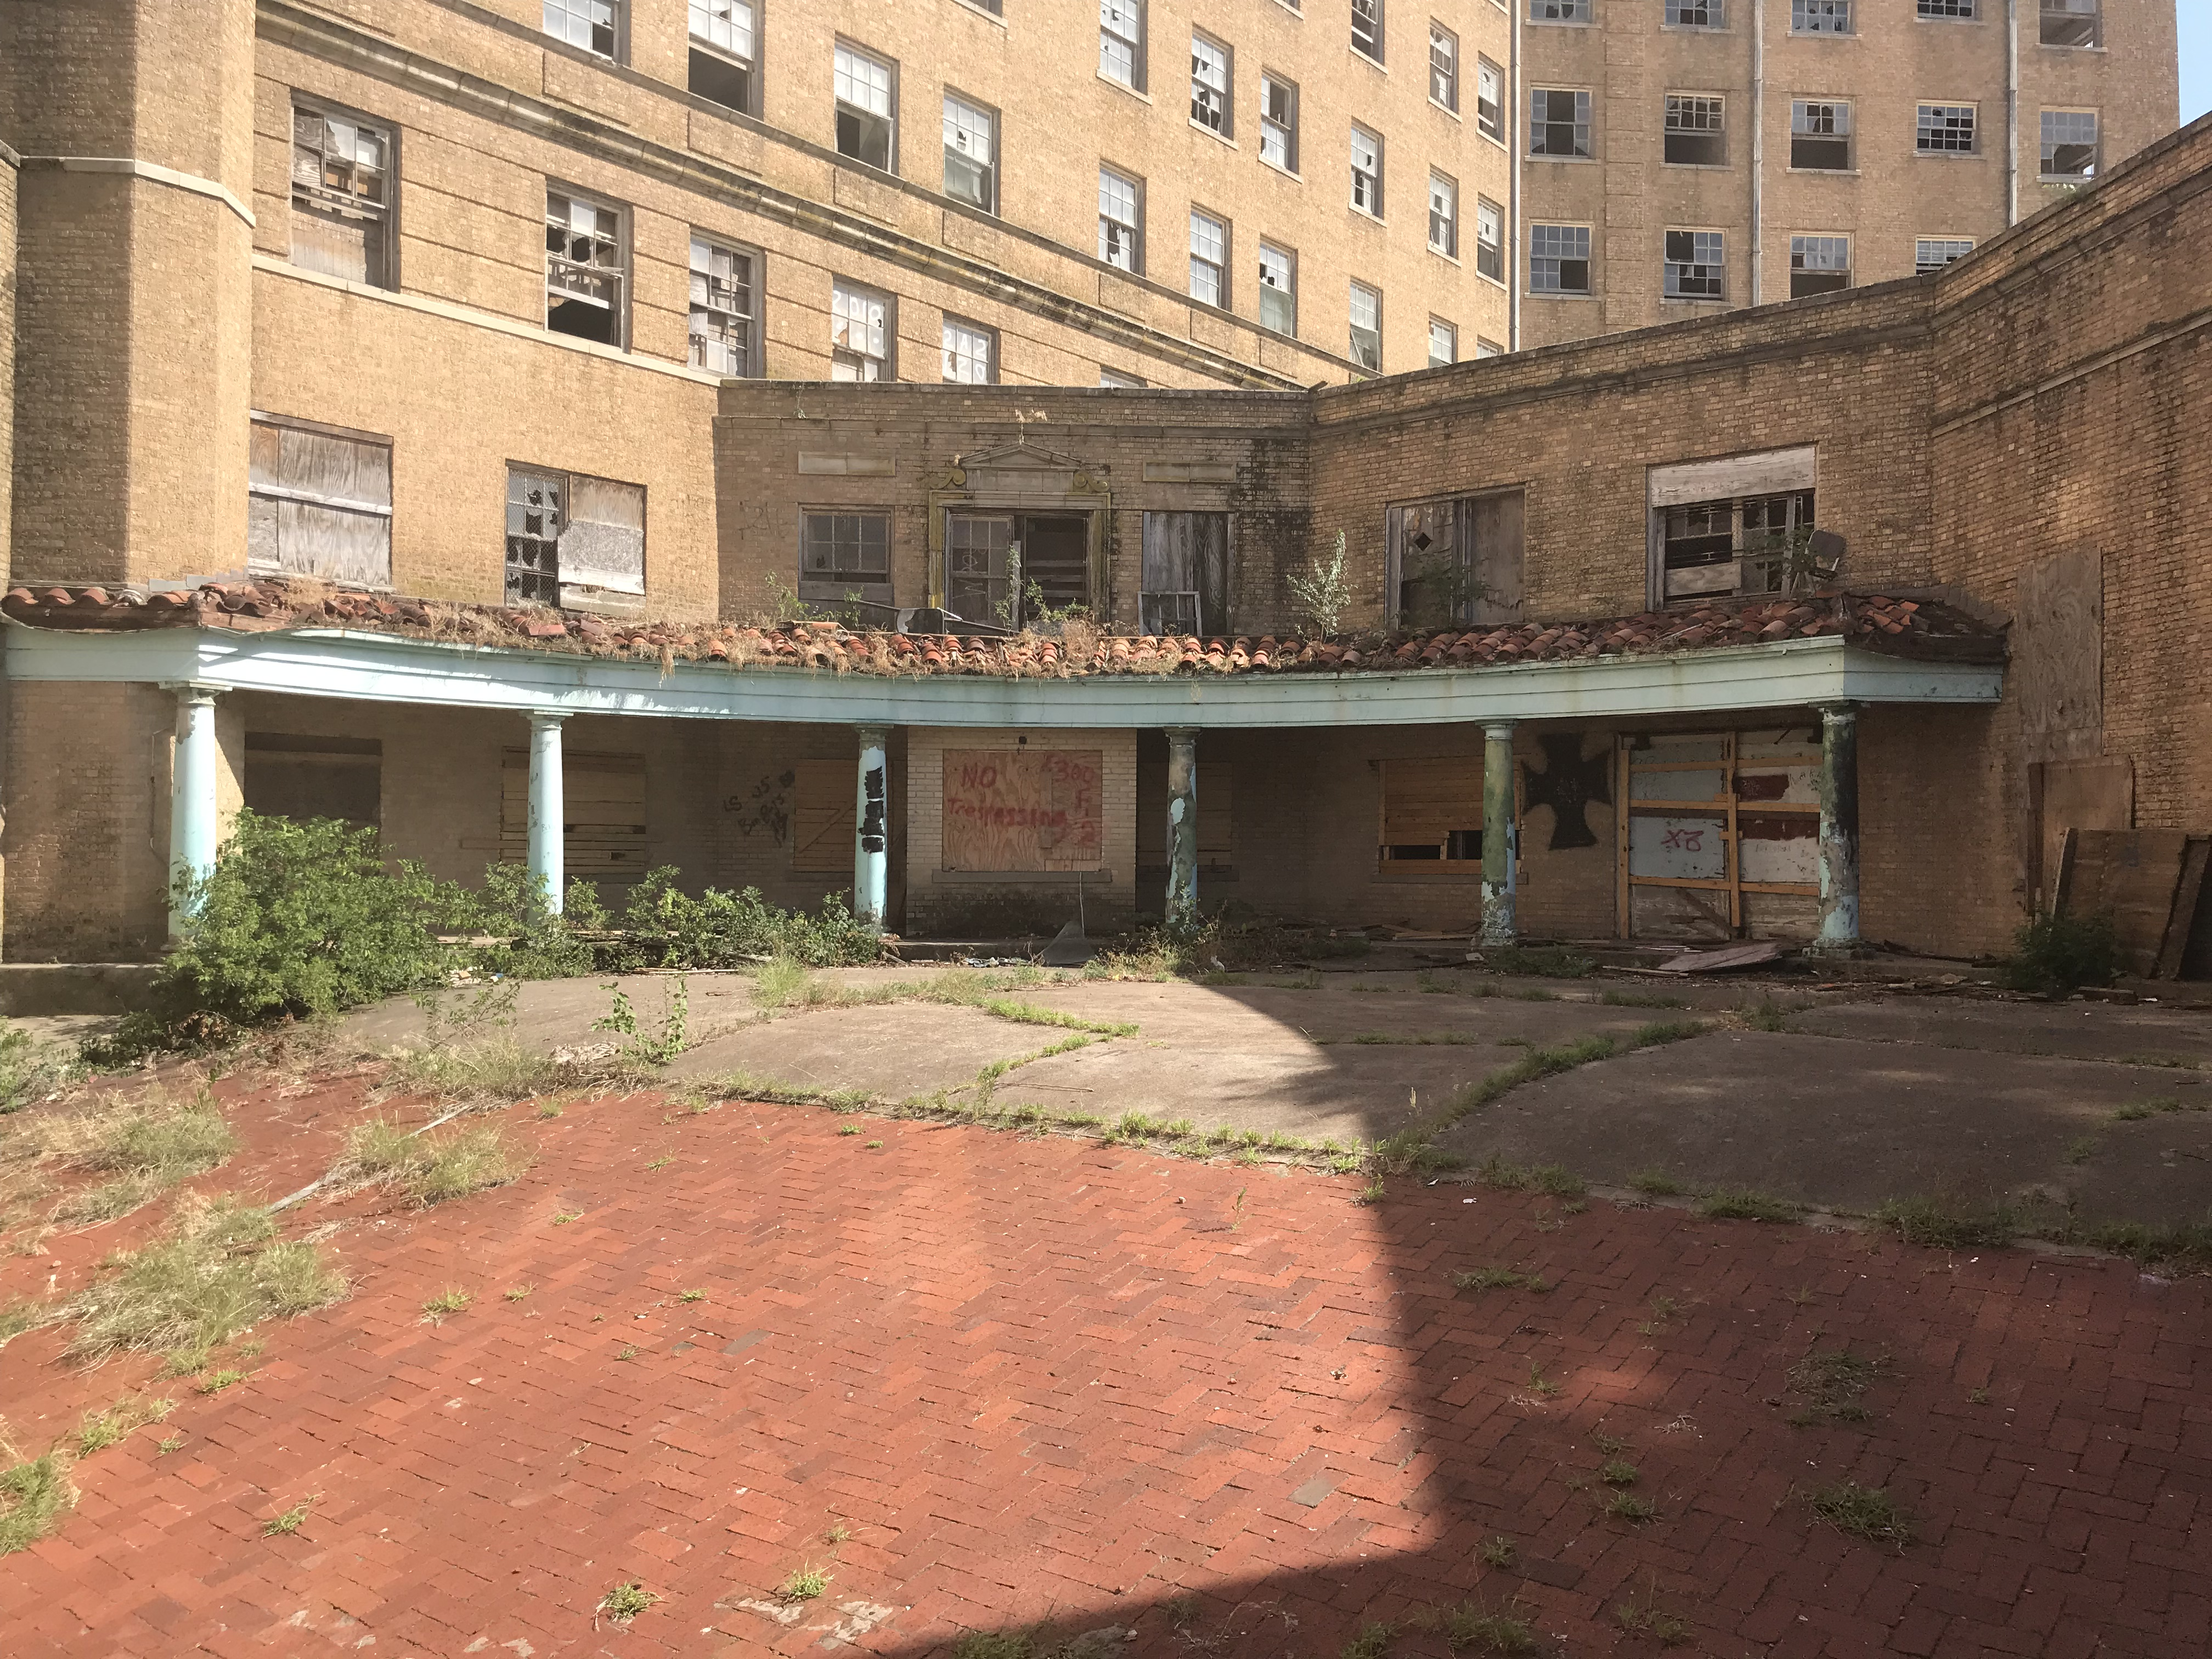 side shot of the baker hotel with overgrown weeds